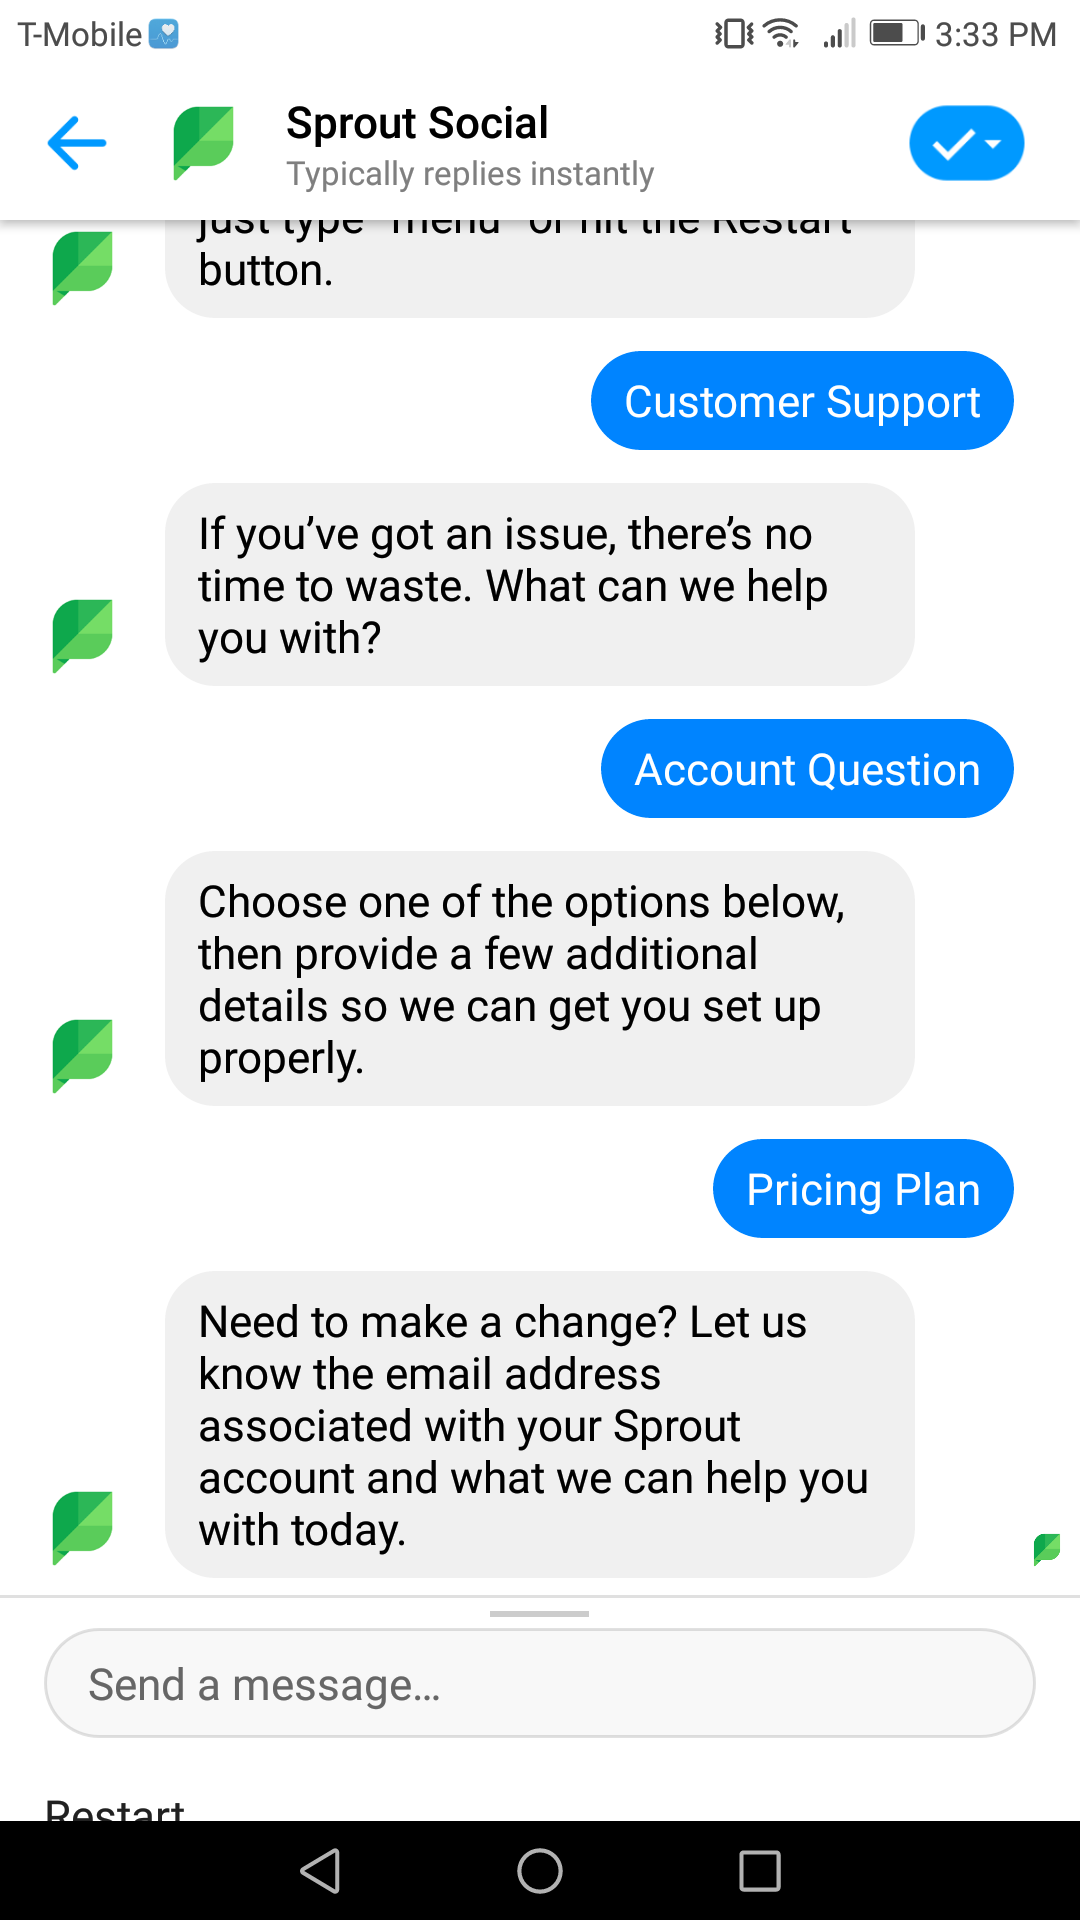 Sprout offers a variety of service options